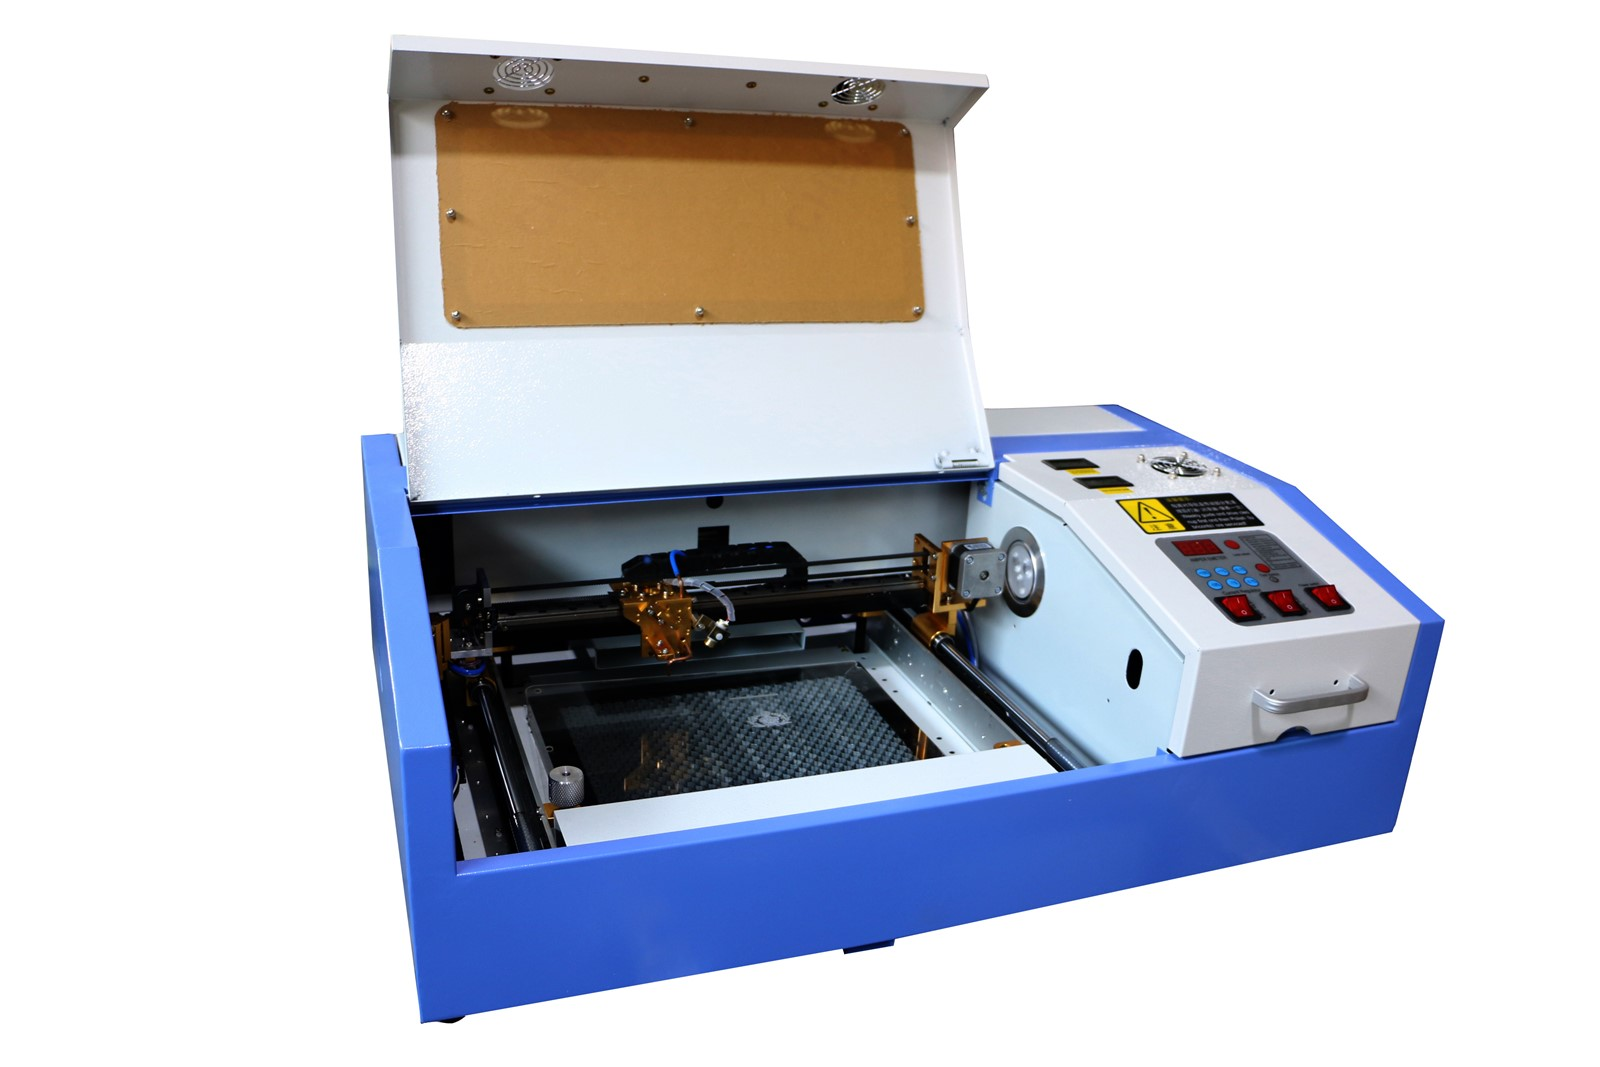 Snap K40 Laser Cutter Gin And Tronic Photos On Pinterest Engraver The Electronic Mercenary Engraving Machineseal Machine High Speedlow Price Purchasing Souring